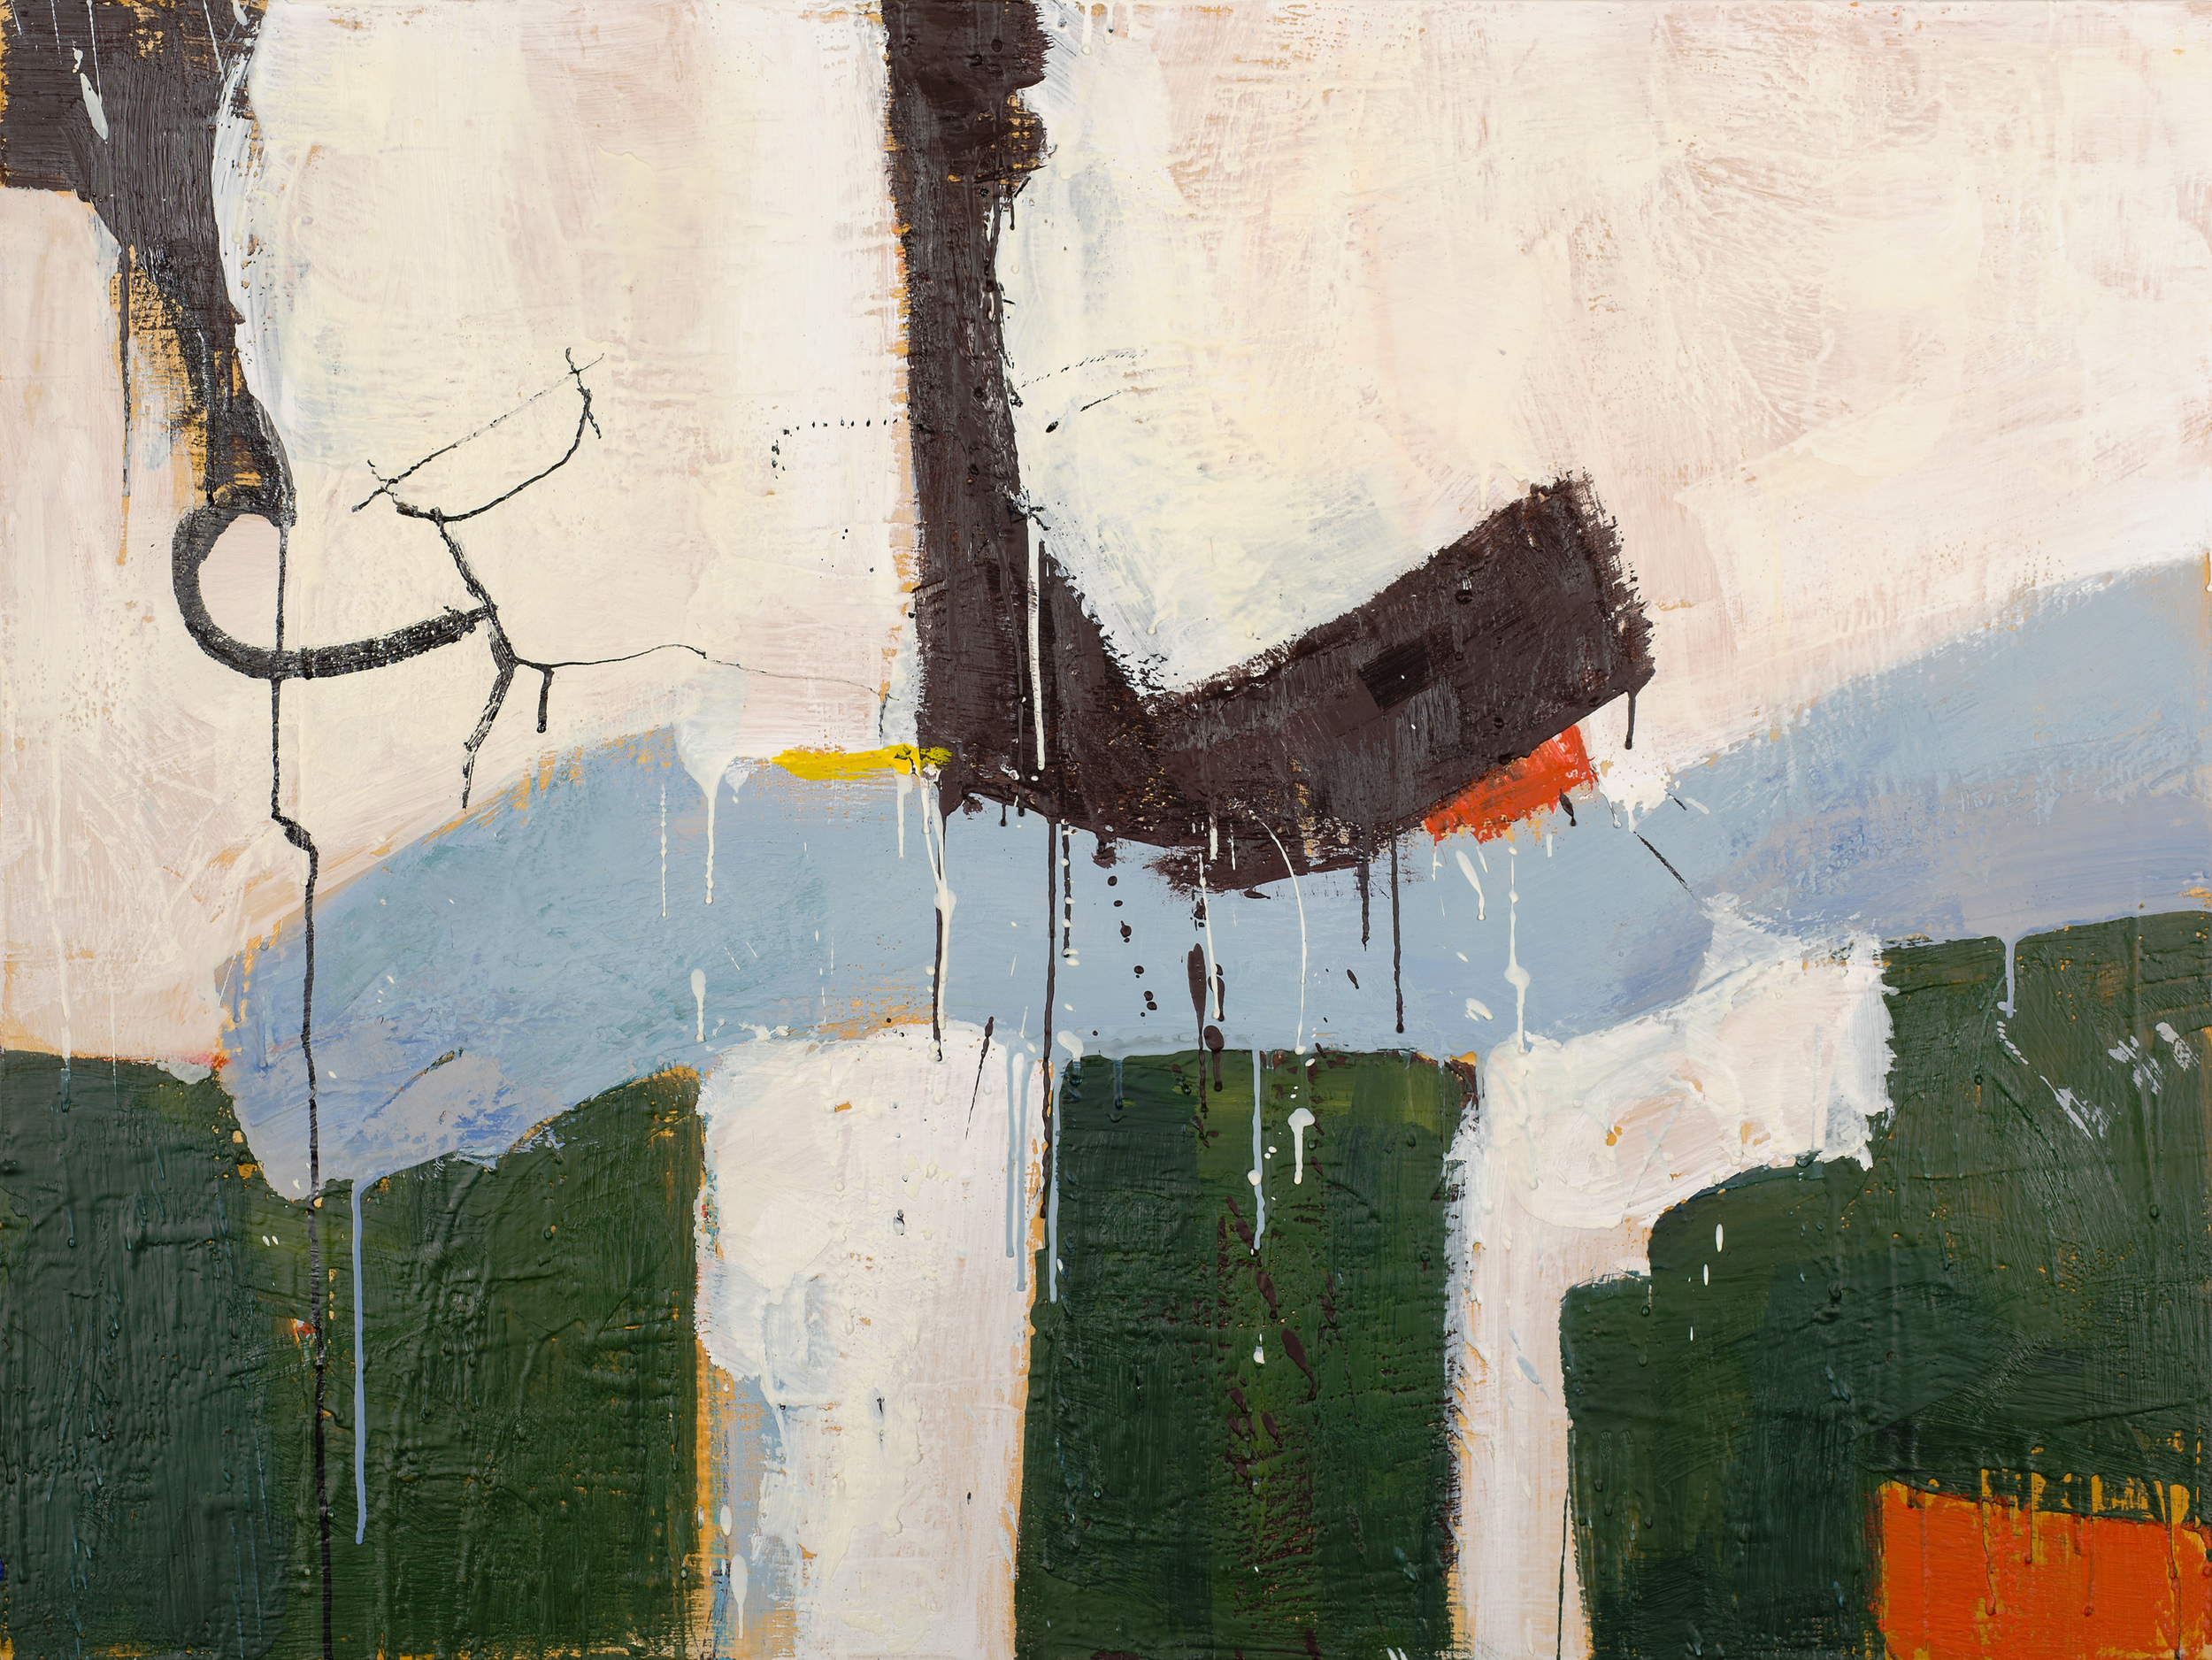 KW-068, Keith Wood, This Time 8, 2015, Encaustic on Panel, 40 x 30, $2,750